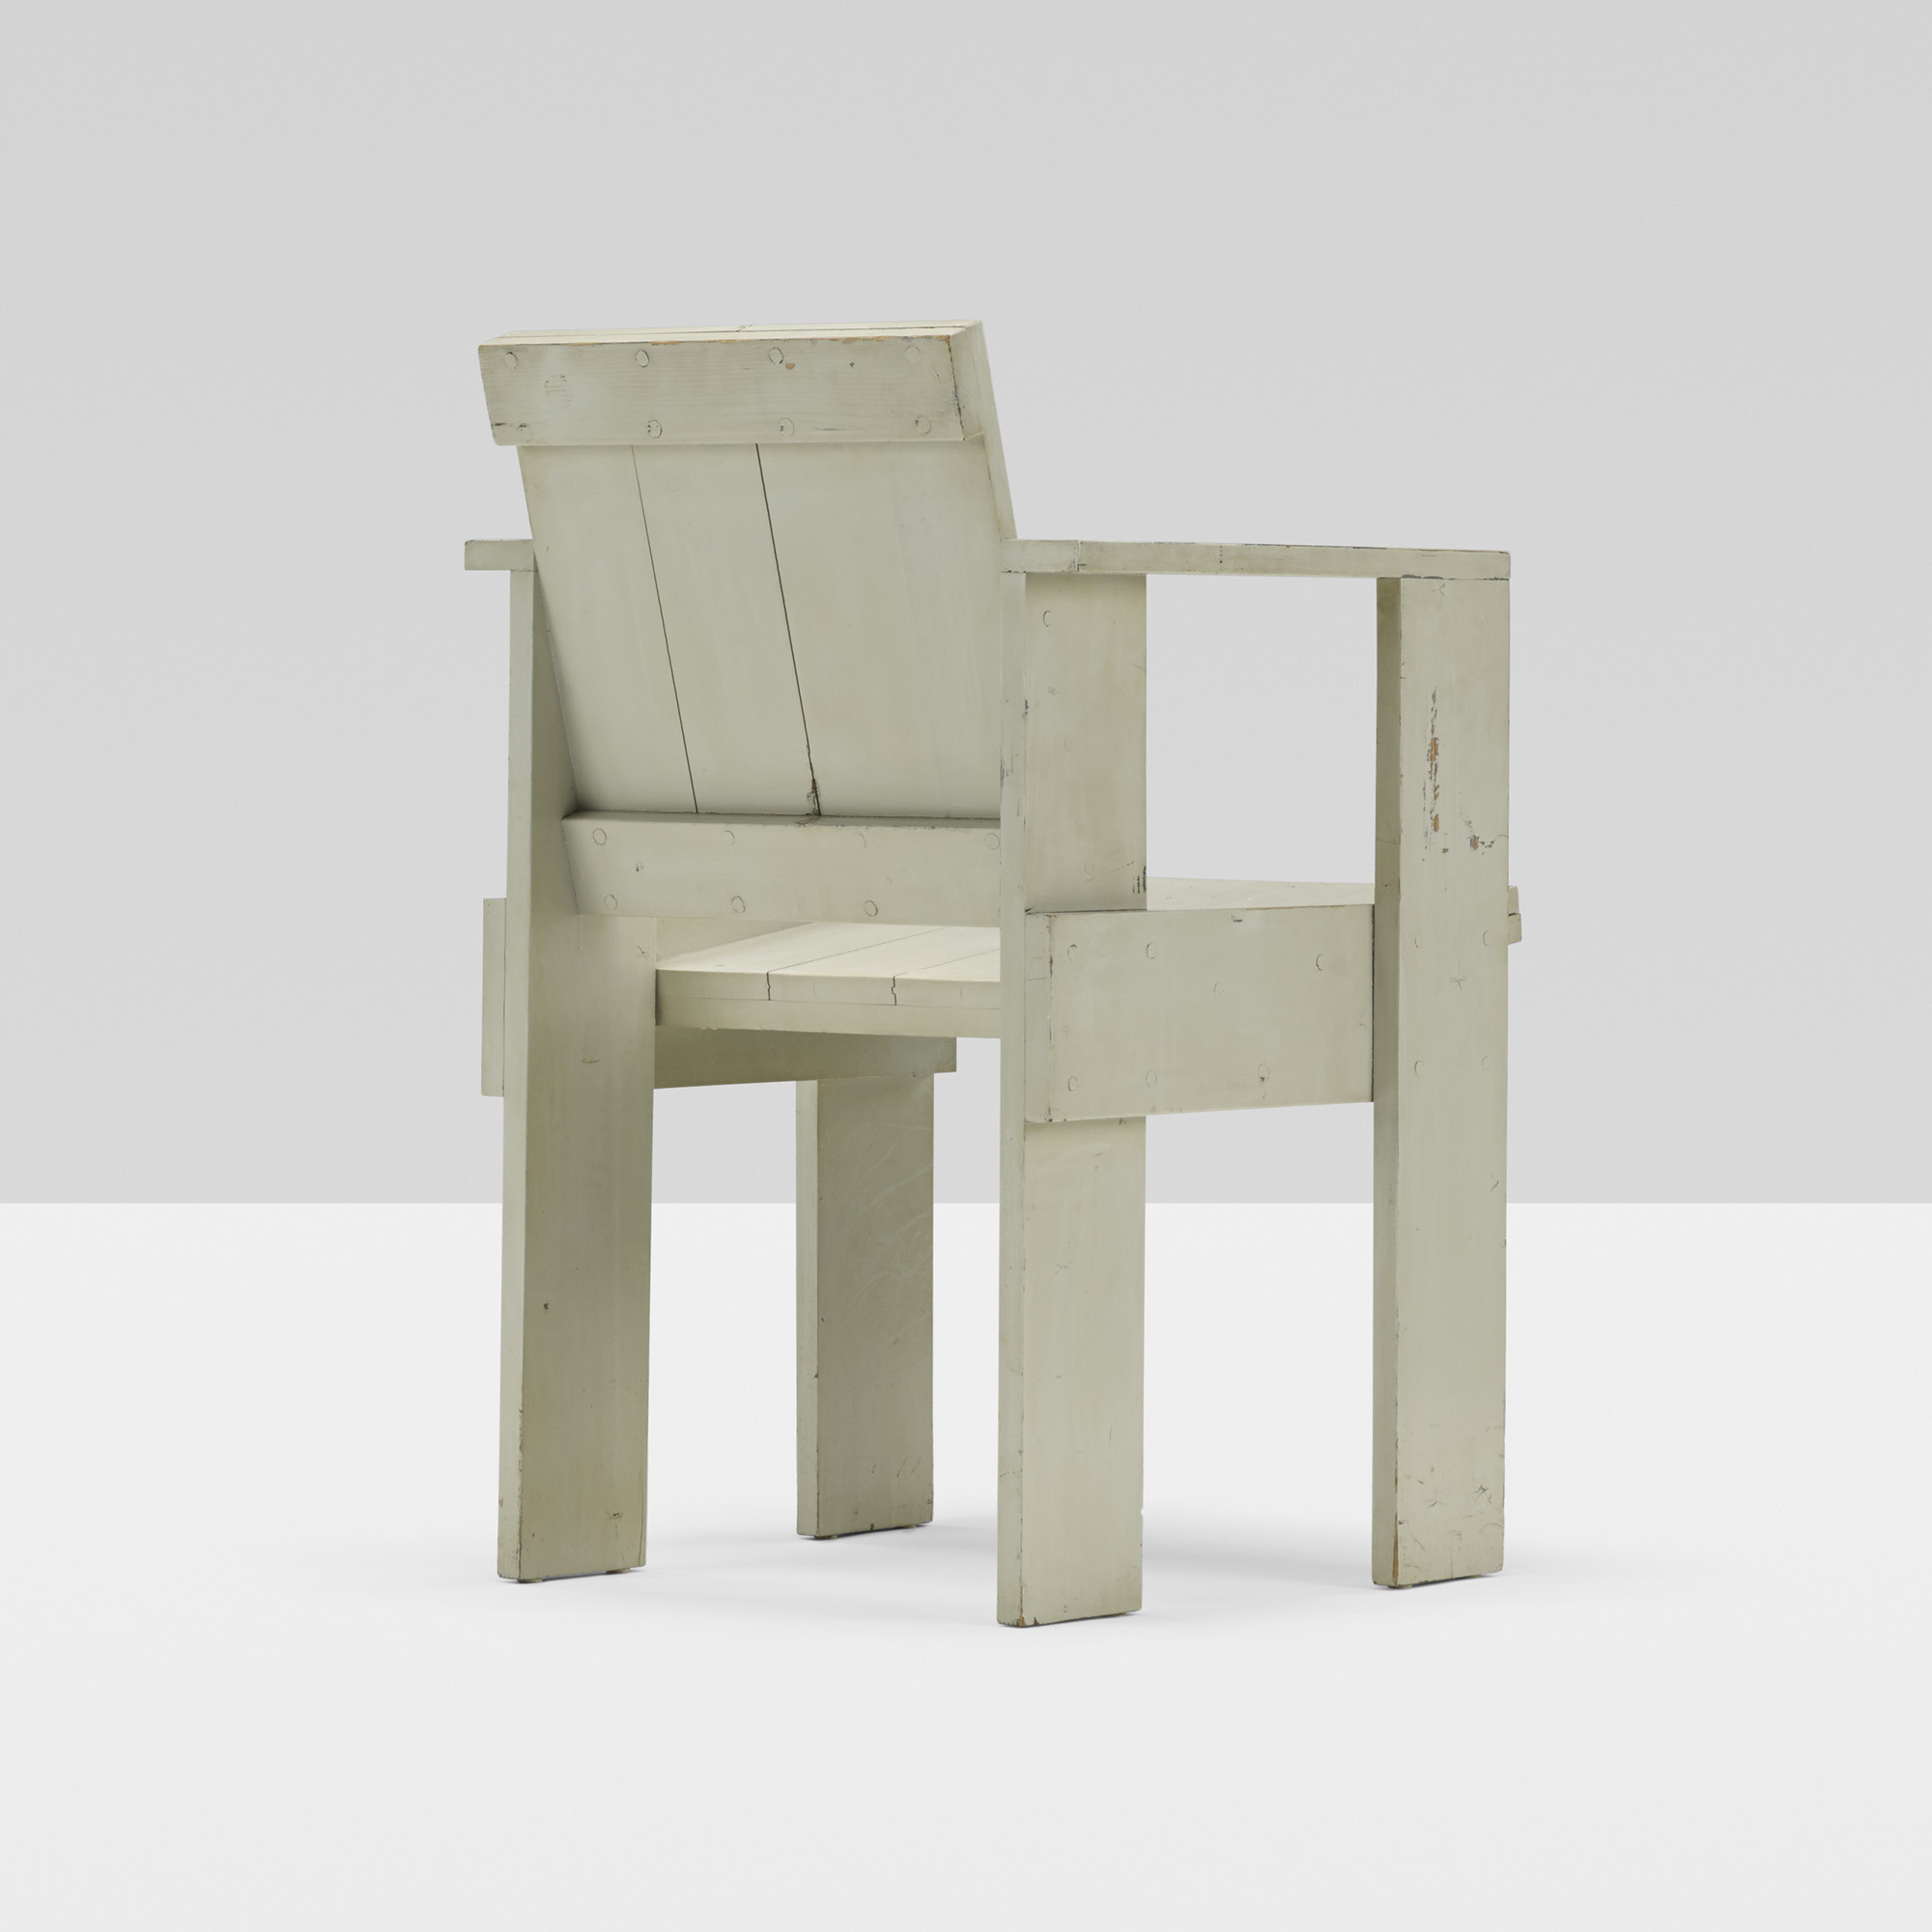 Delicieux 159: Gerrit Rietveld / Crate Chair (1 Of 4)